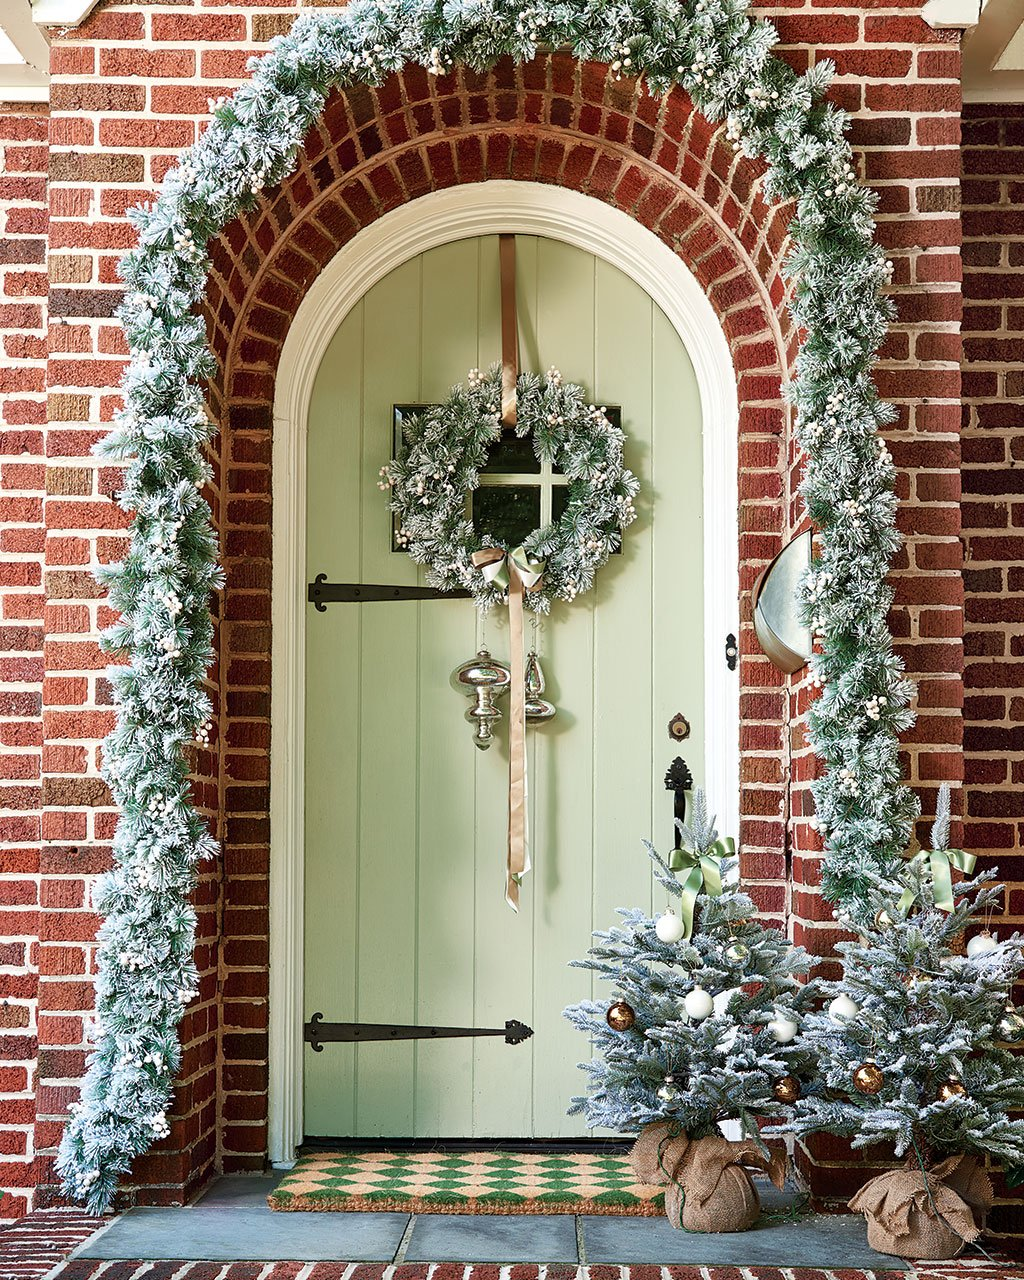 10 Festive, Holiday Front Doors to Inspire - How To Decorate